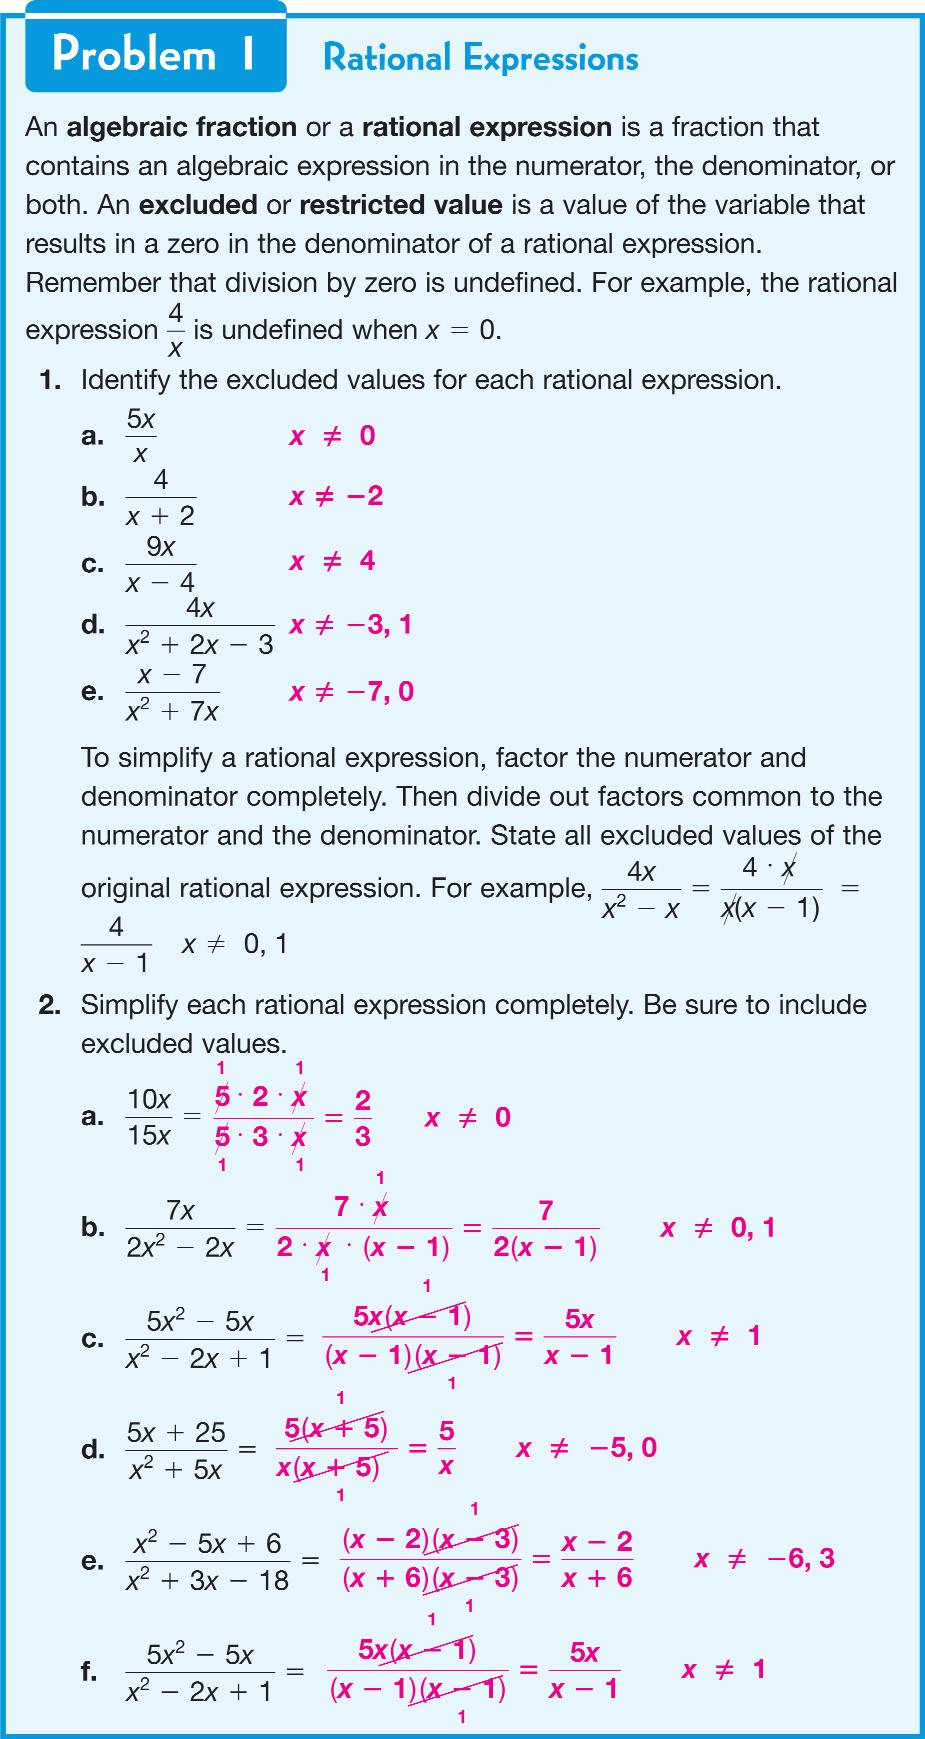 Explore Together Problem 1 The definition of an algebraic fraction or rational expression is provided for students, with explanations of excluded or restricted values.